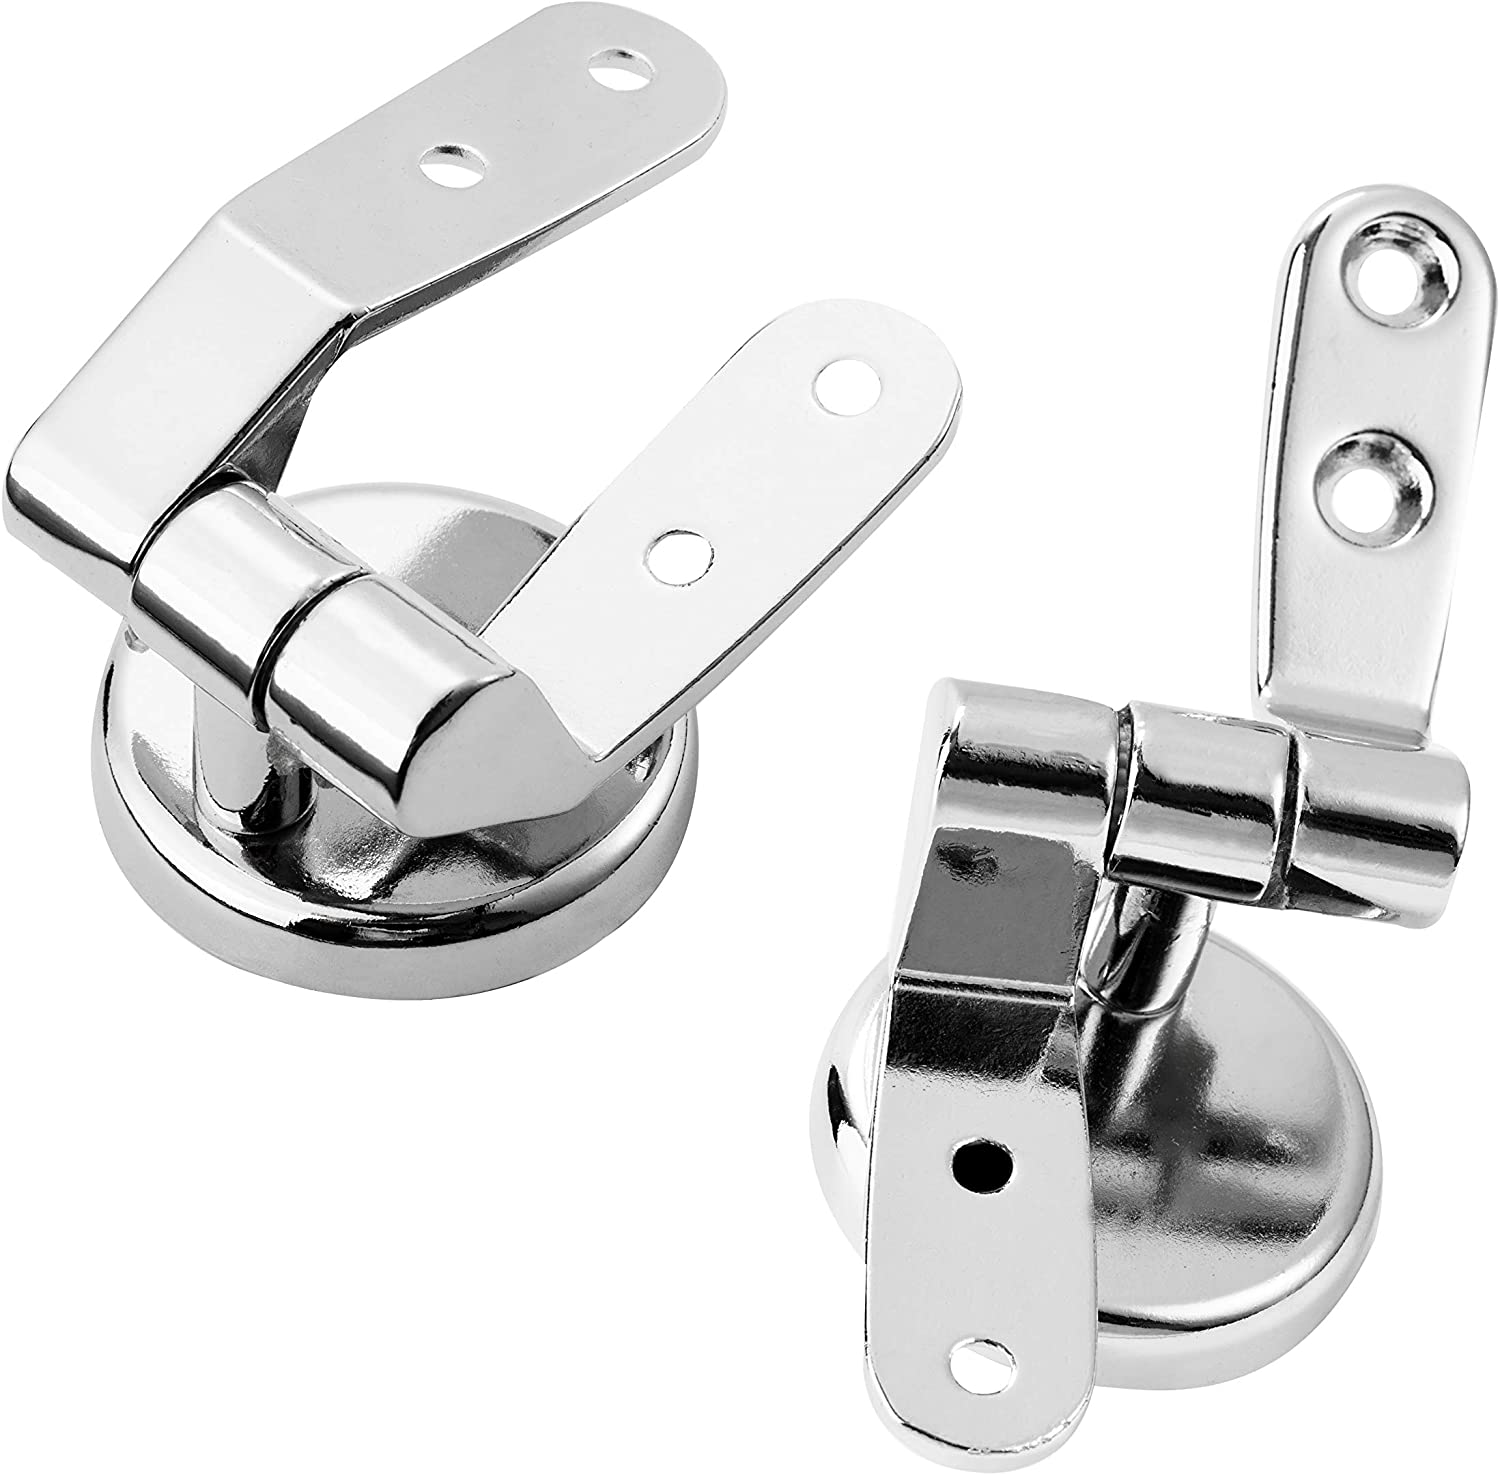 Locisne 1 Pair Toilet Seat Hinges,Universal Adjustable Zinc Alloy Finished Replacement Toilet Seat Hinges Fittings for Toilet Seats DIY Repair Kit